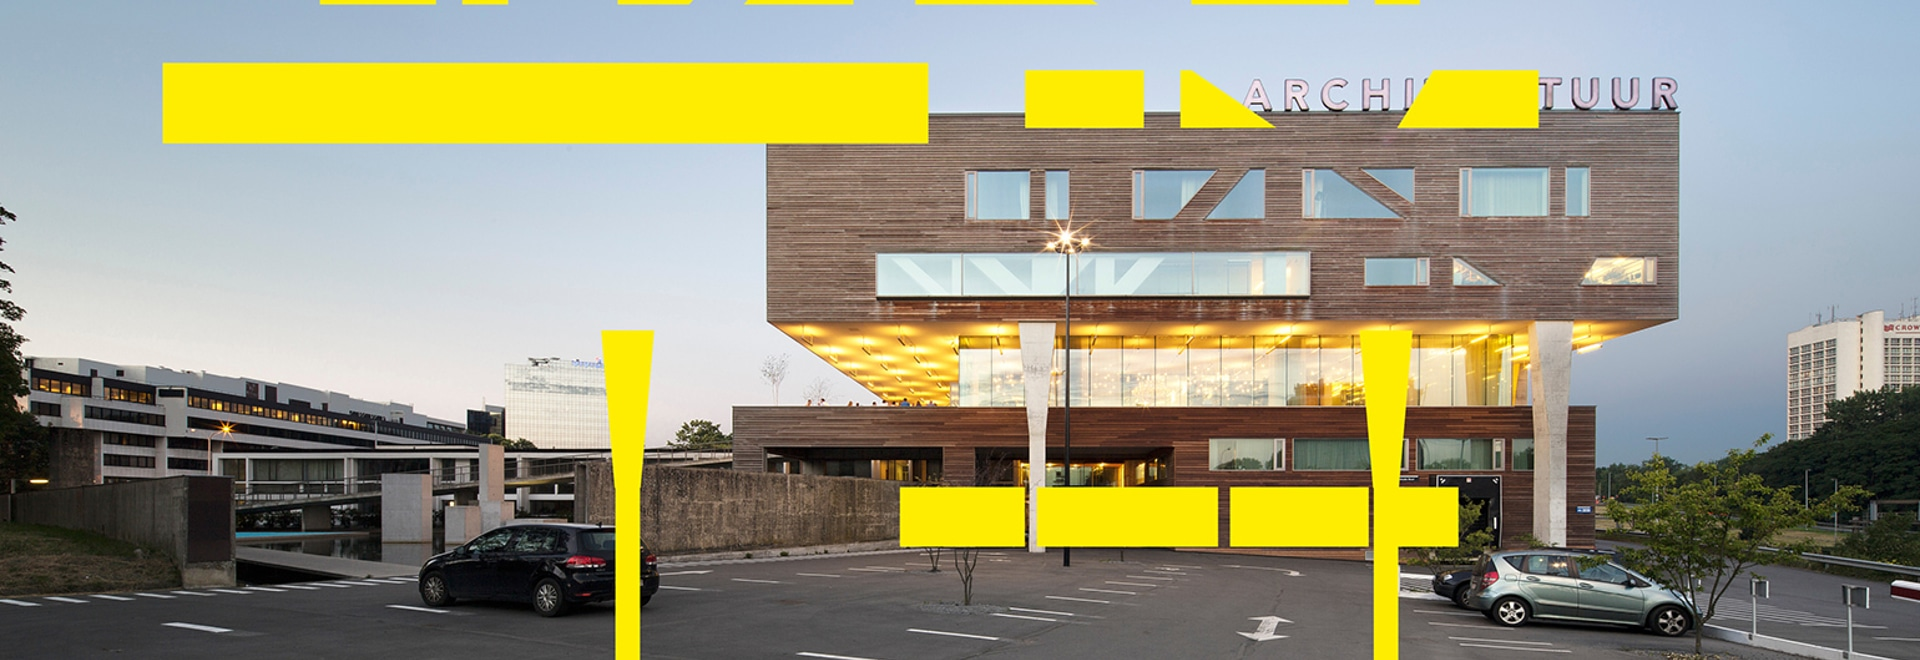 Antwerp's deSingel Arts Campus reveals their new architecturally-inspired graphics, designed by Why Not Associates